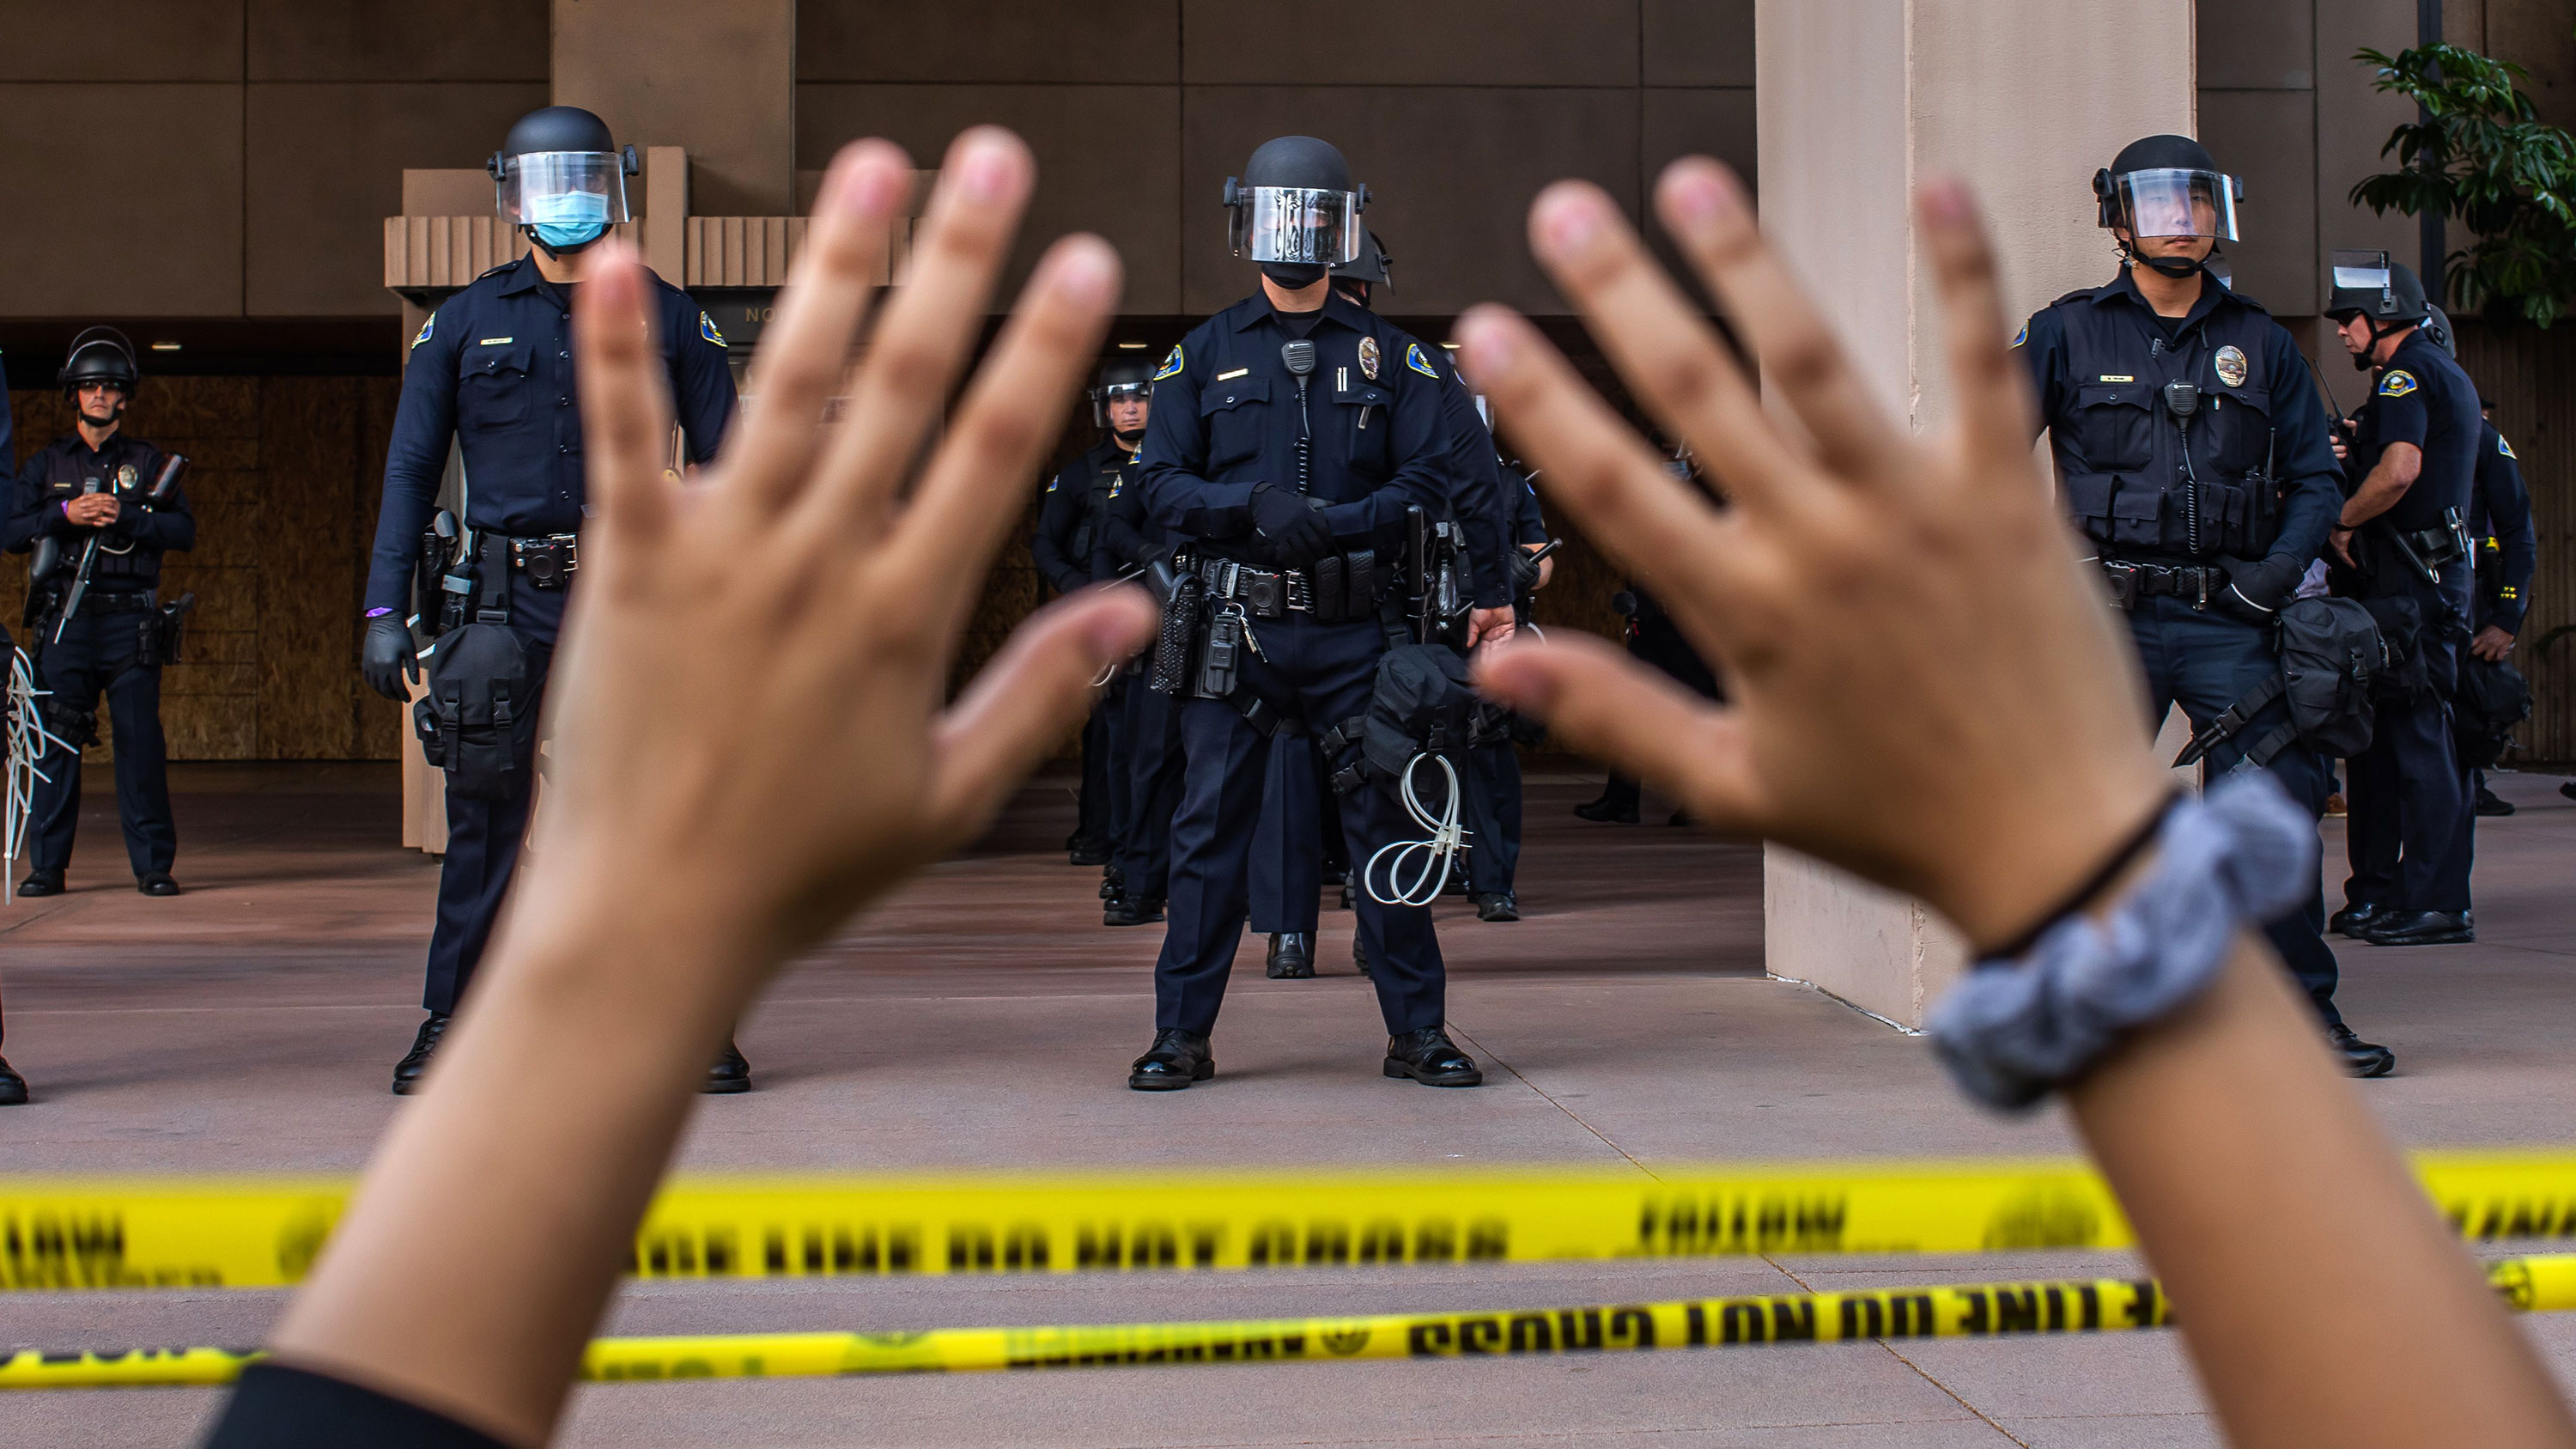 Police unions have helped shield officers from accountability. Now they're facing unprecedented backlash